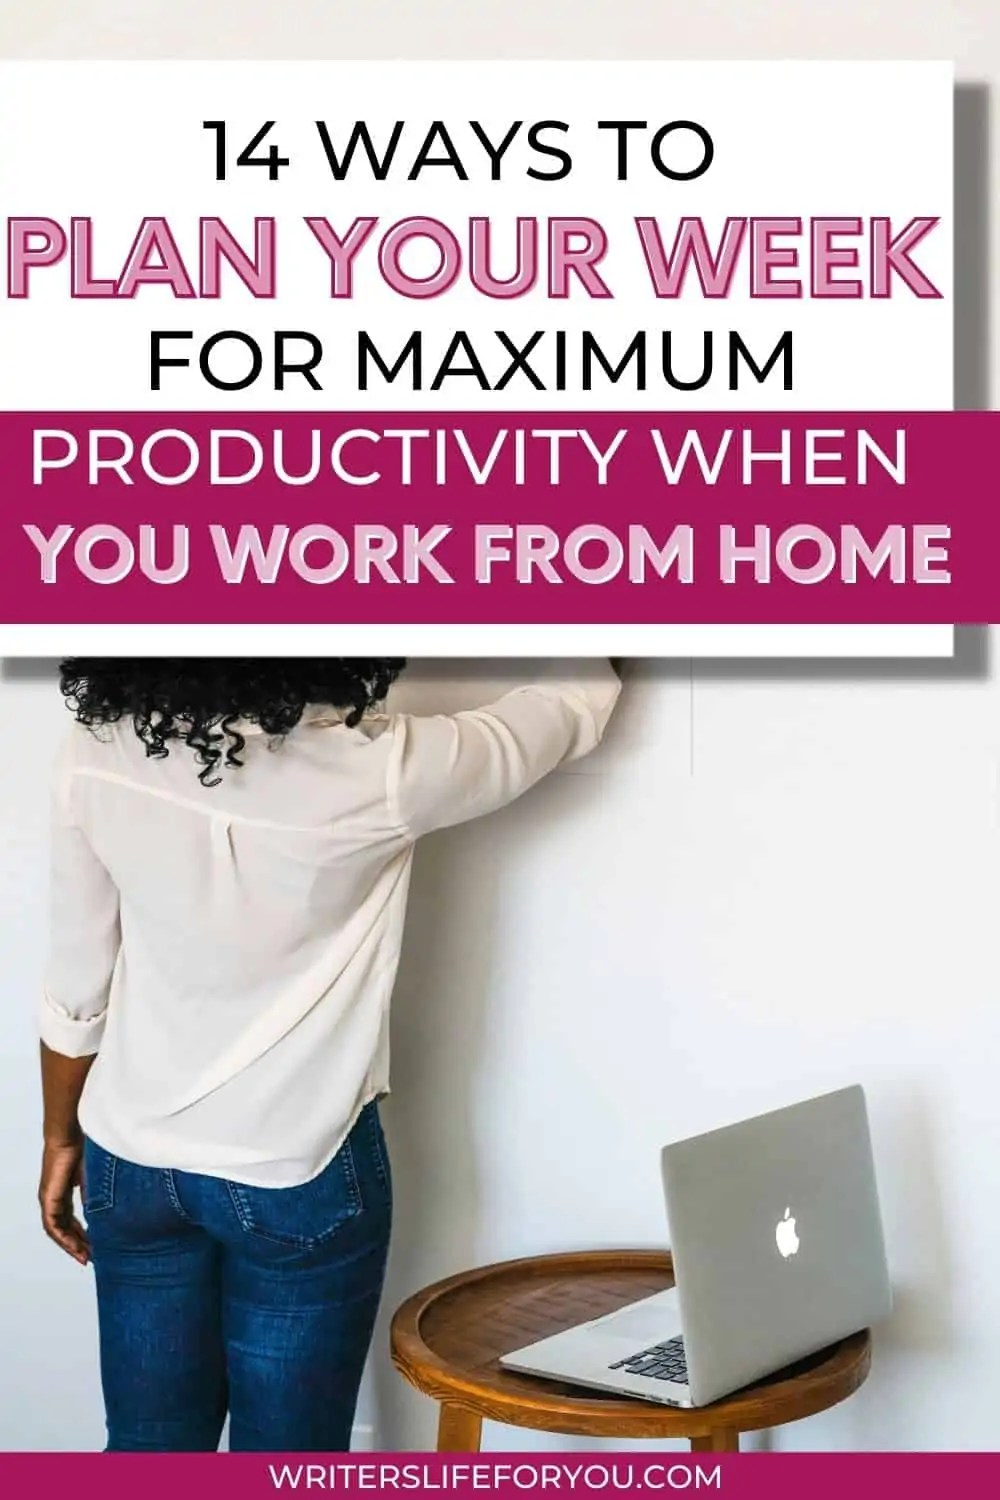 14 Best Tips on How to Plan Your Week to Be Productive Every Day